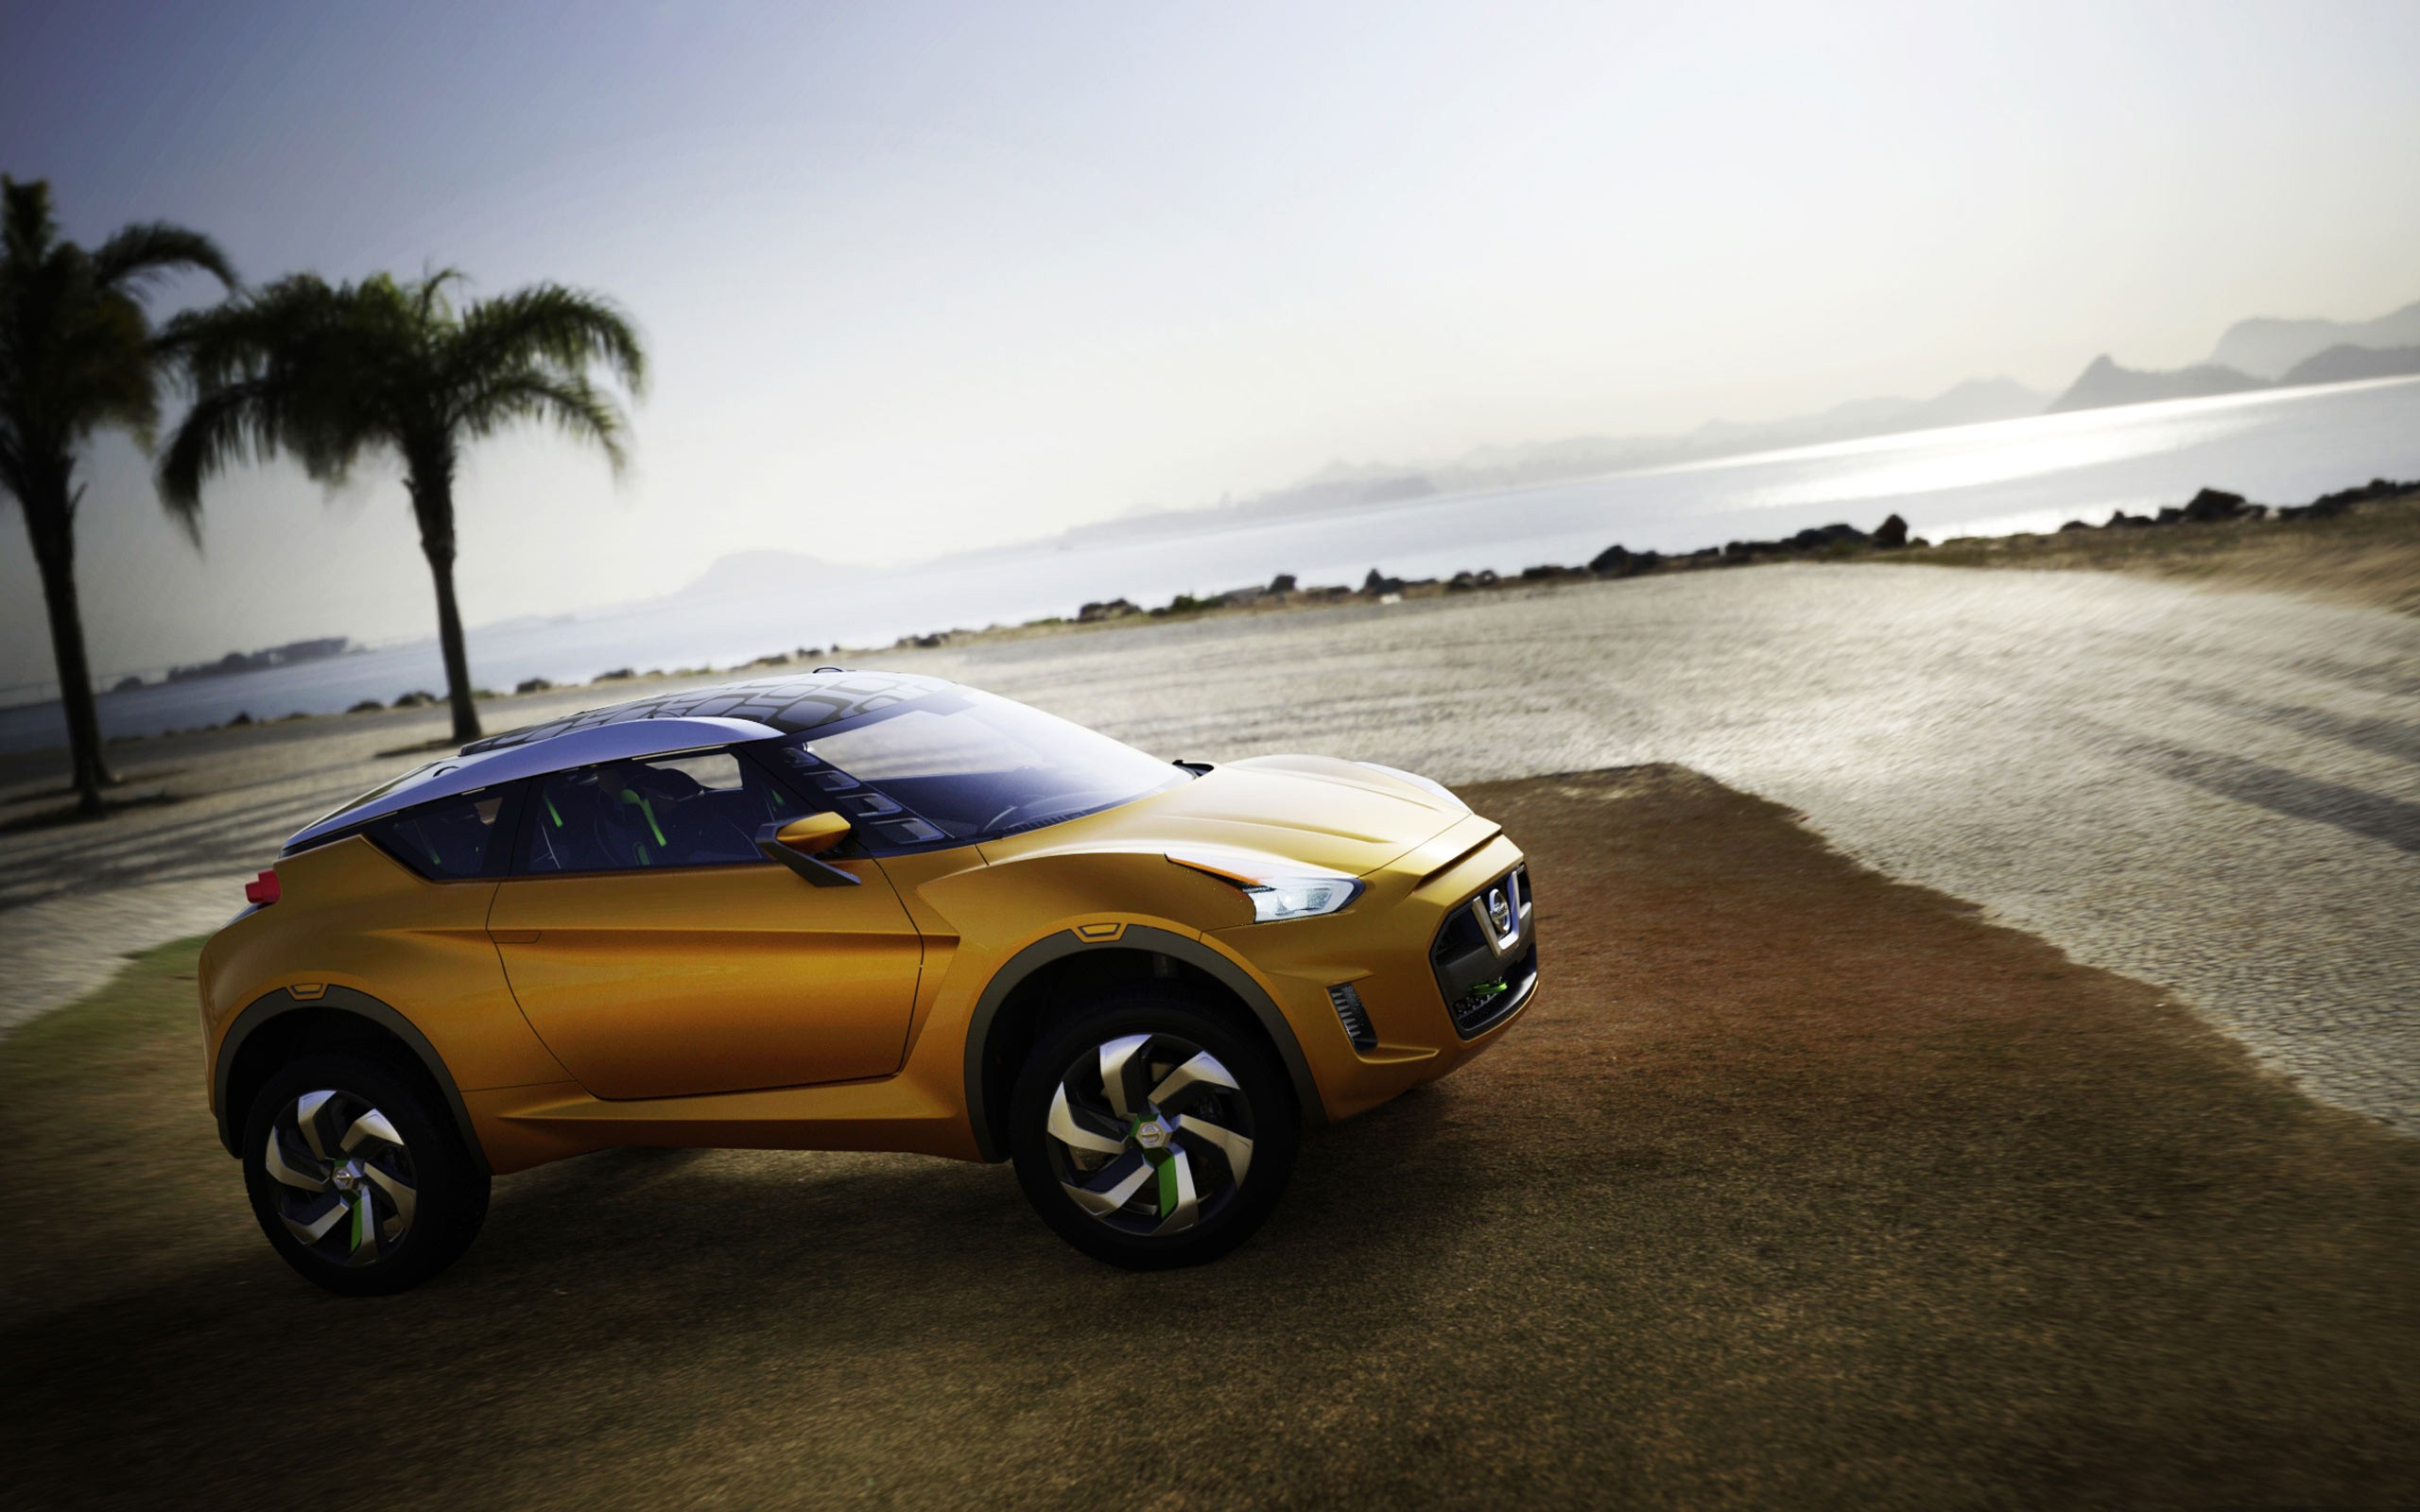 Nissan Extreme Concept Wallpaper Hd Car Wallpapers Id